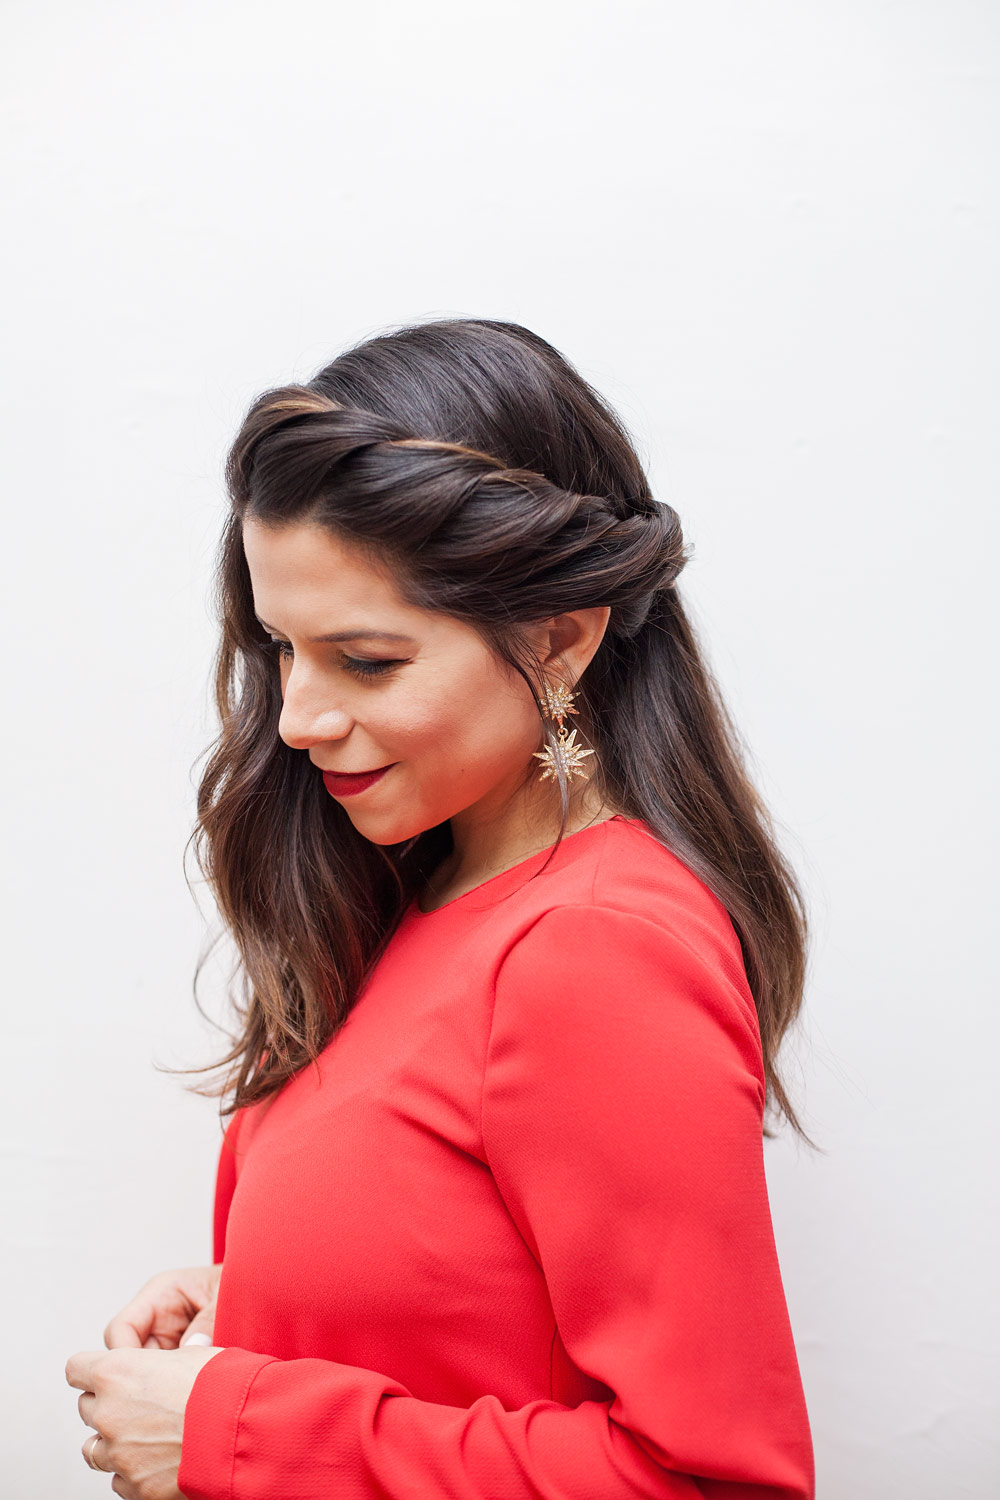 Twisted Side Braid Easy hairstyles for New Year's Eve Braid tutorial how to style your hair this season Corporate Catwalk New York City